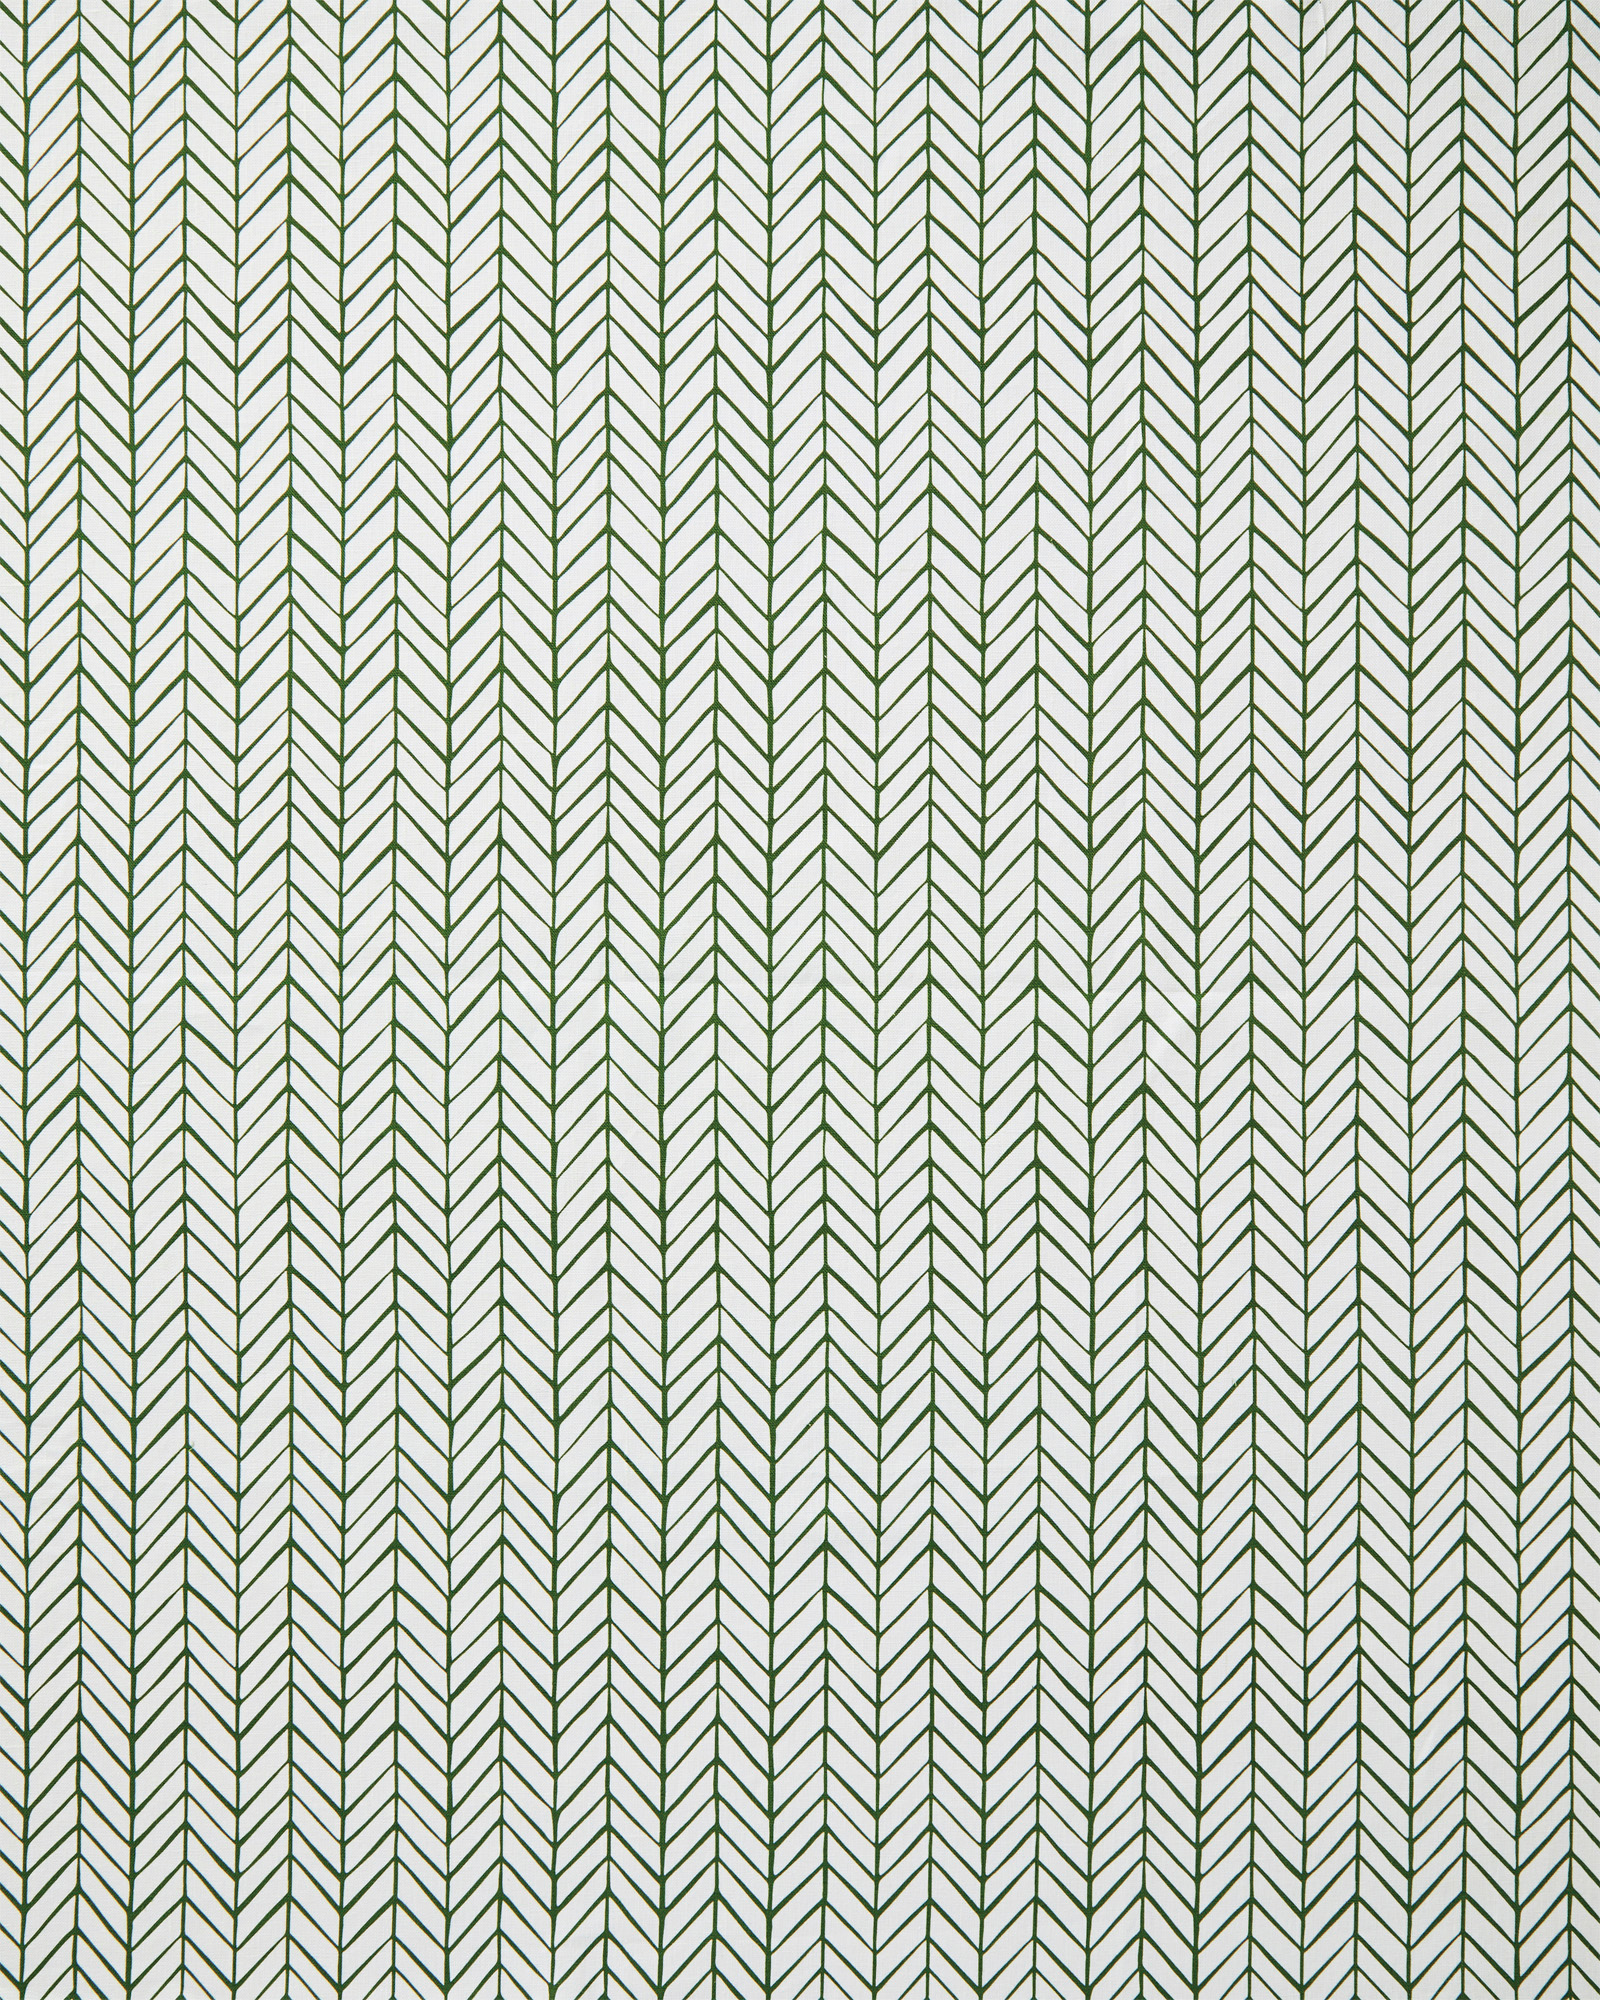 Fabric by the Yard - Herringbone Linen, Moss